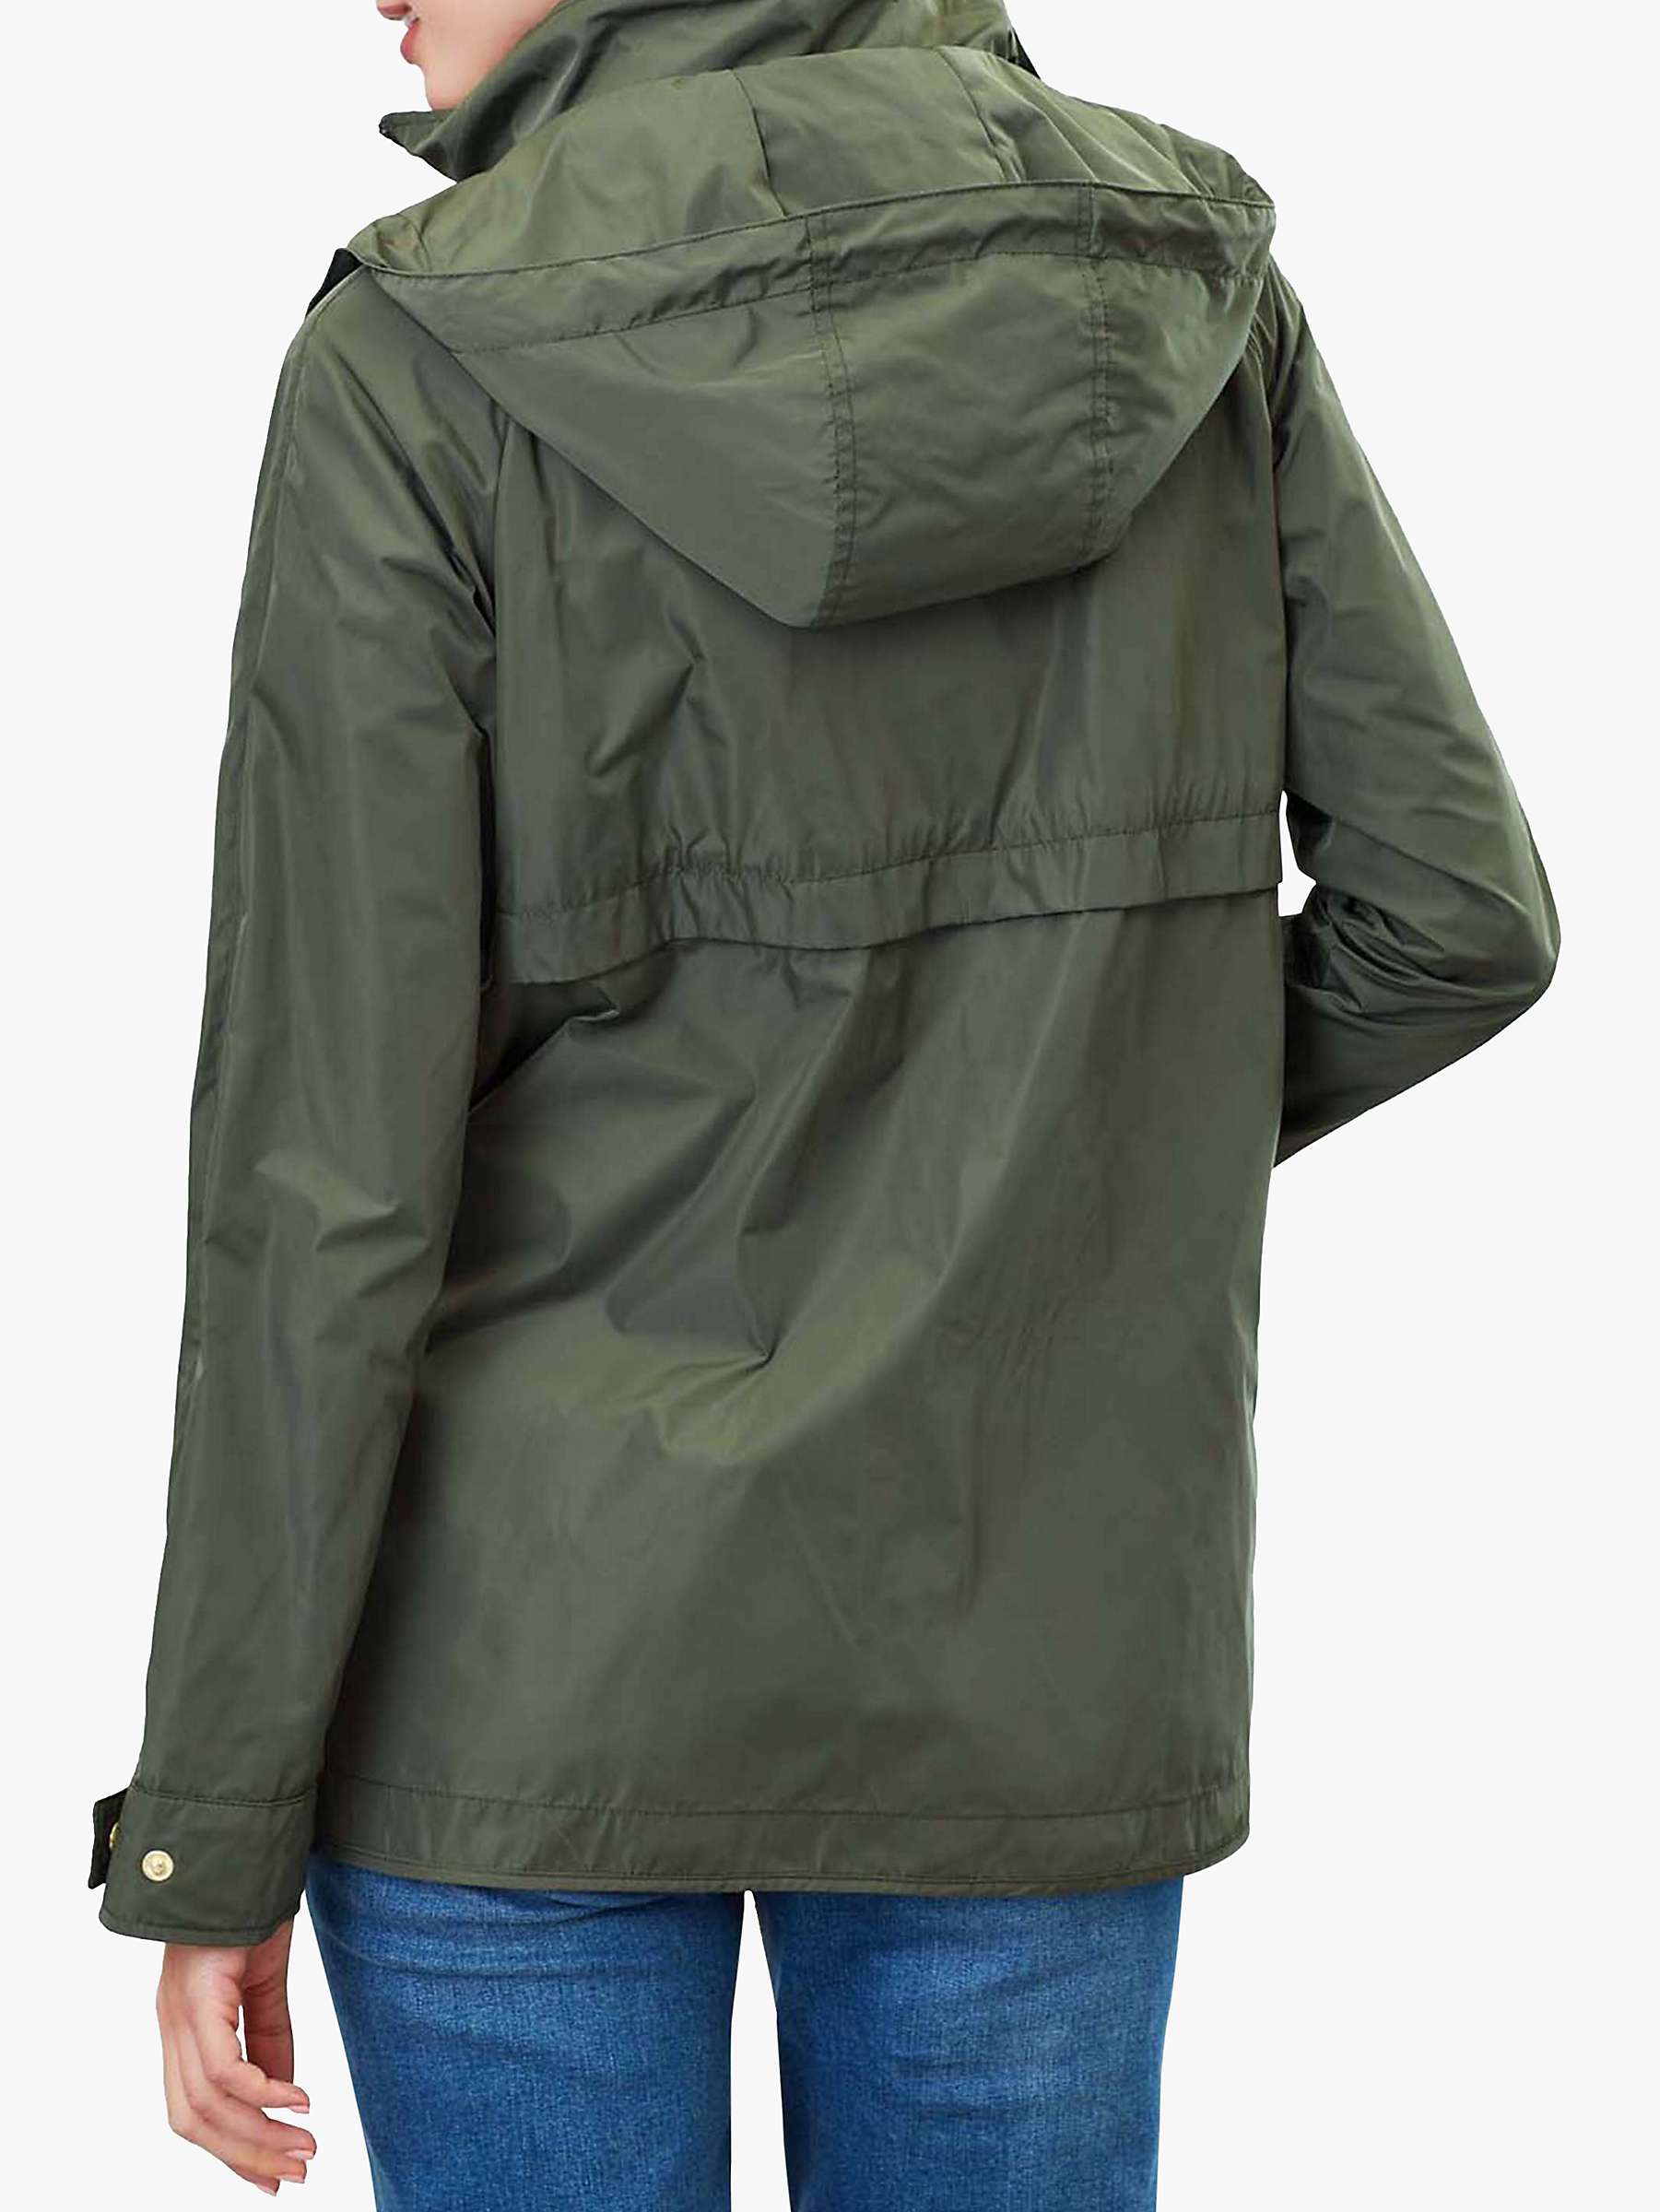 Swindale Showerproof Rain Coat